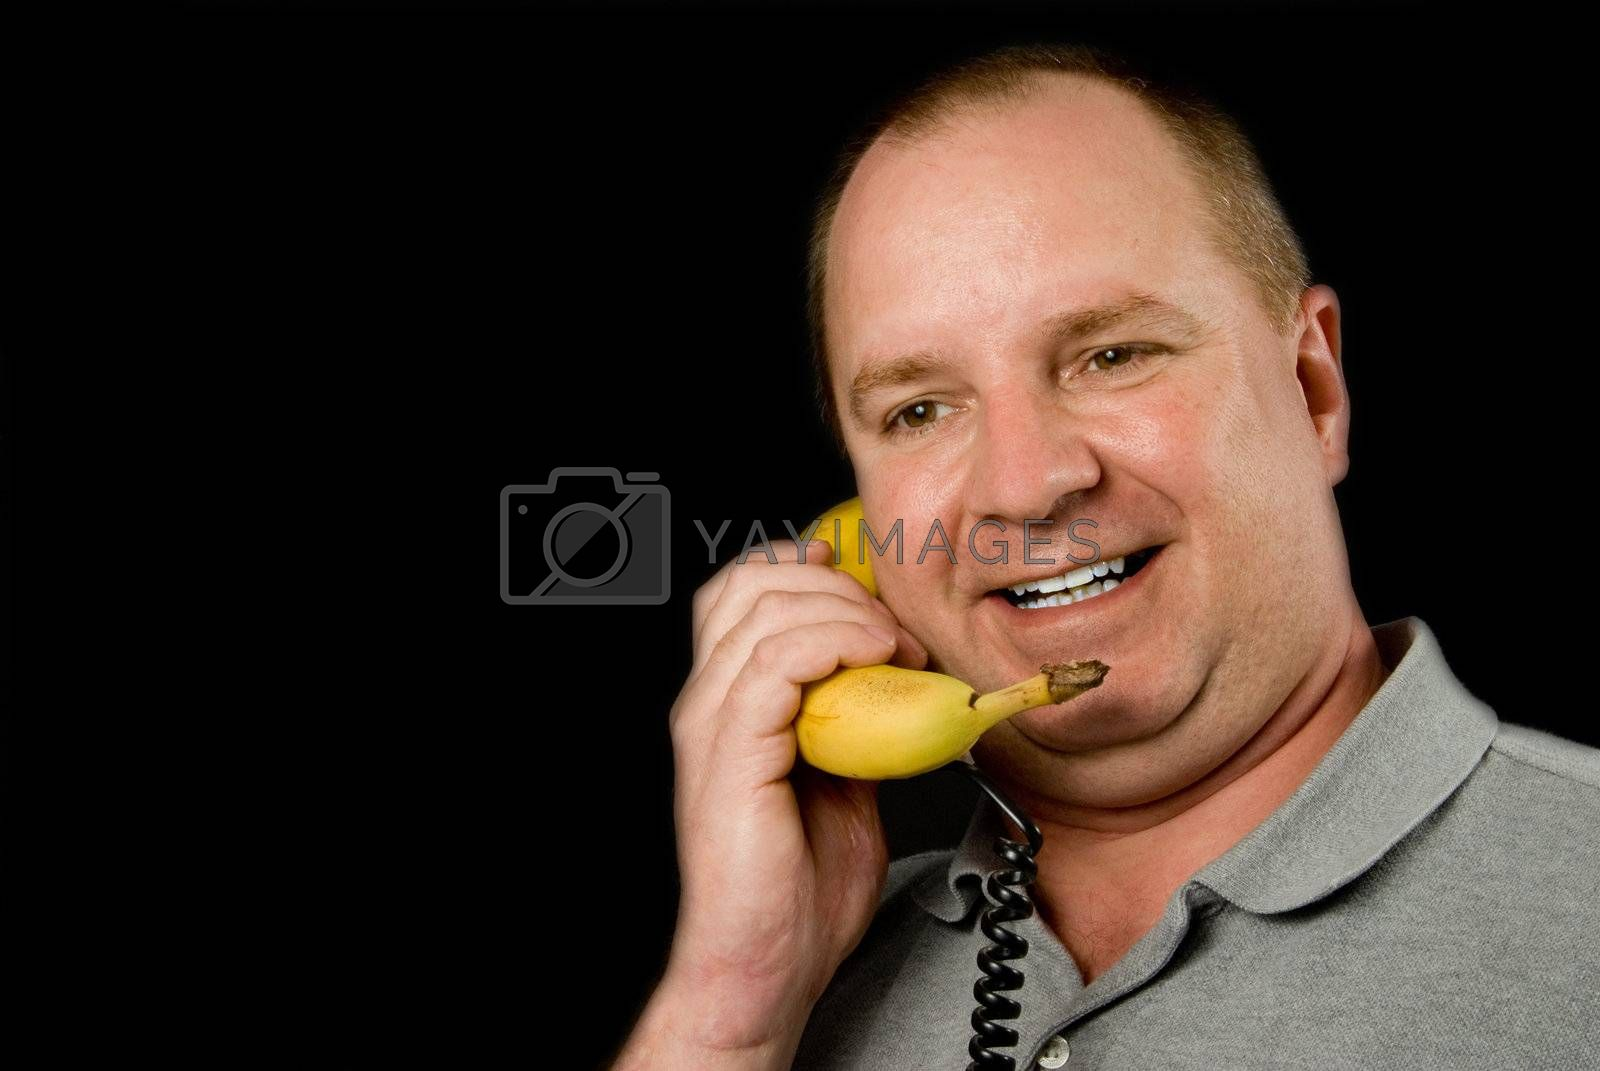 A telephone made out of a banana.